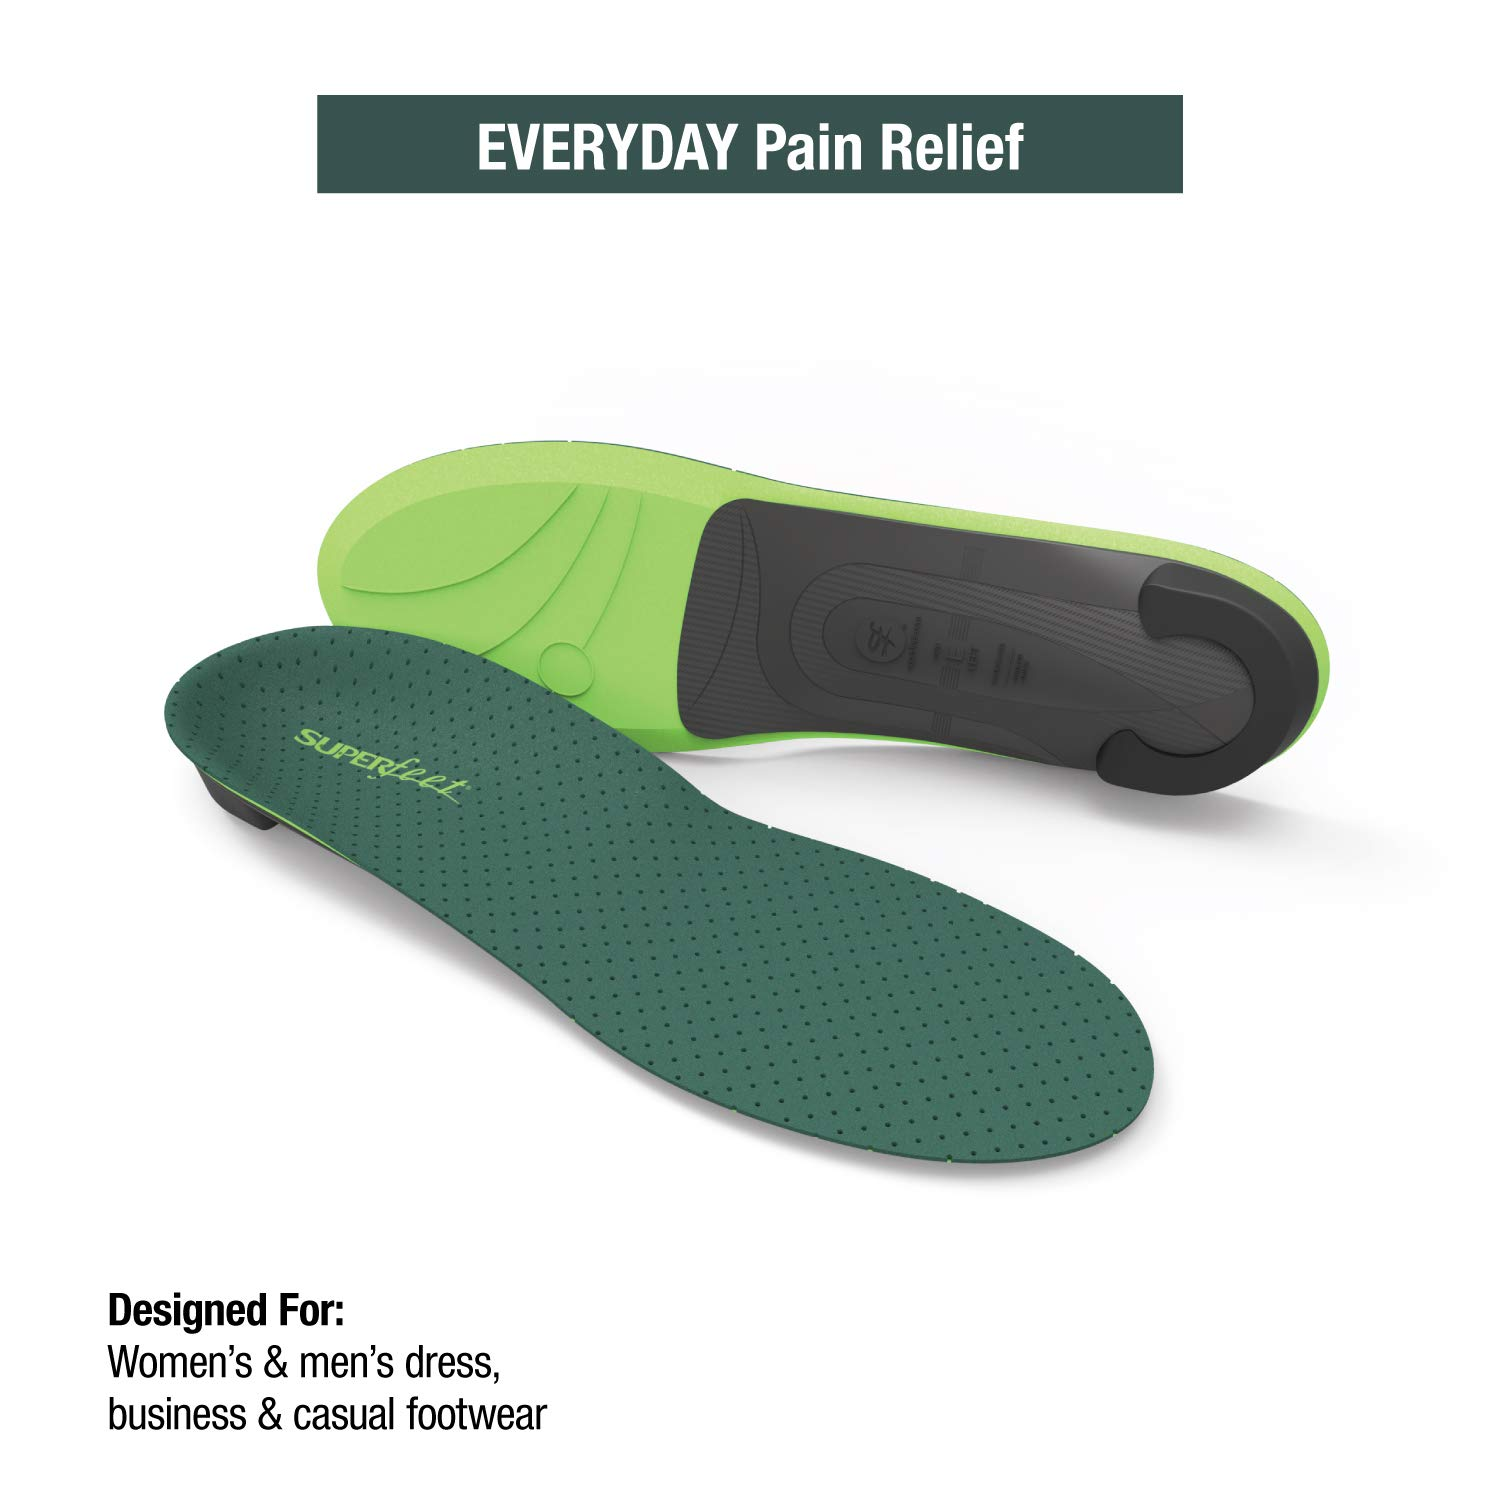 Superfeet Everyday Pain Relief Insoles, Customizable Heel Stability Professional-Grade Orthotic, Limestone, B: 4.5-6 US Womens / 2.5-4 US Juniors by Superfeet (Image #2)